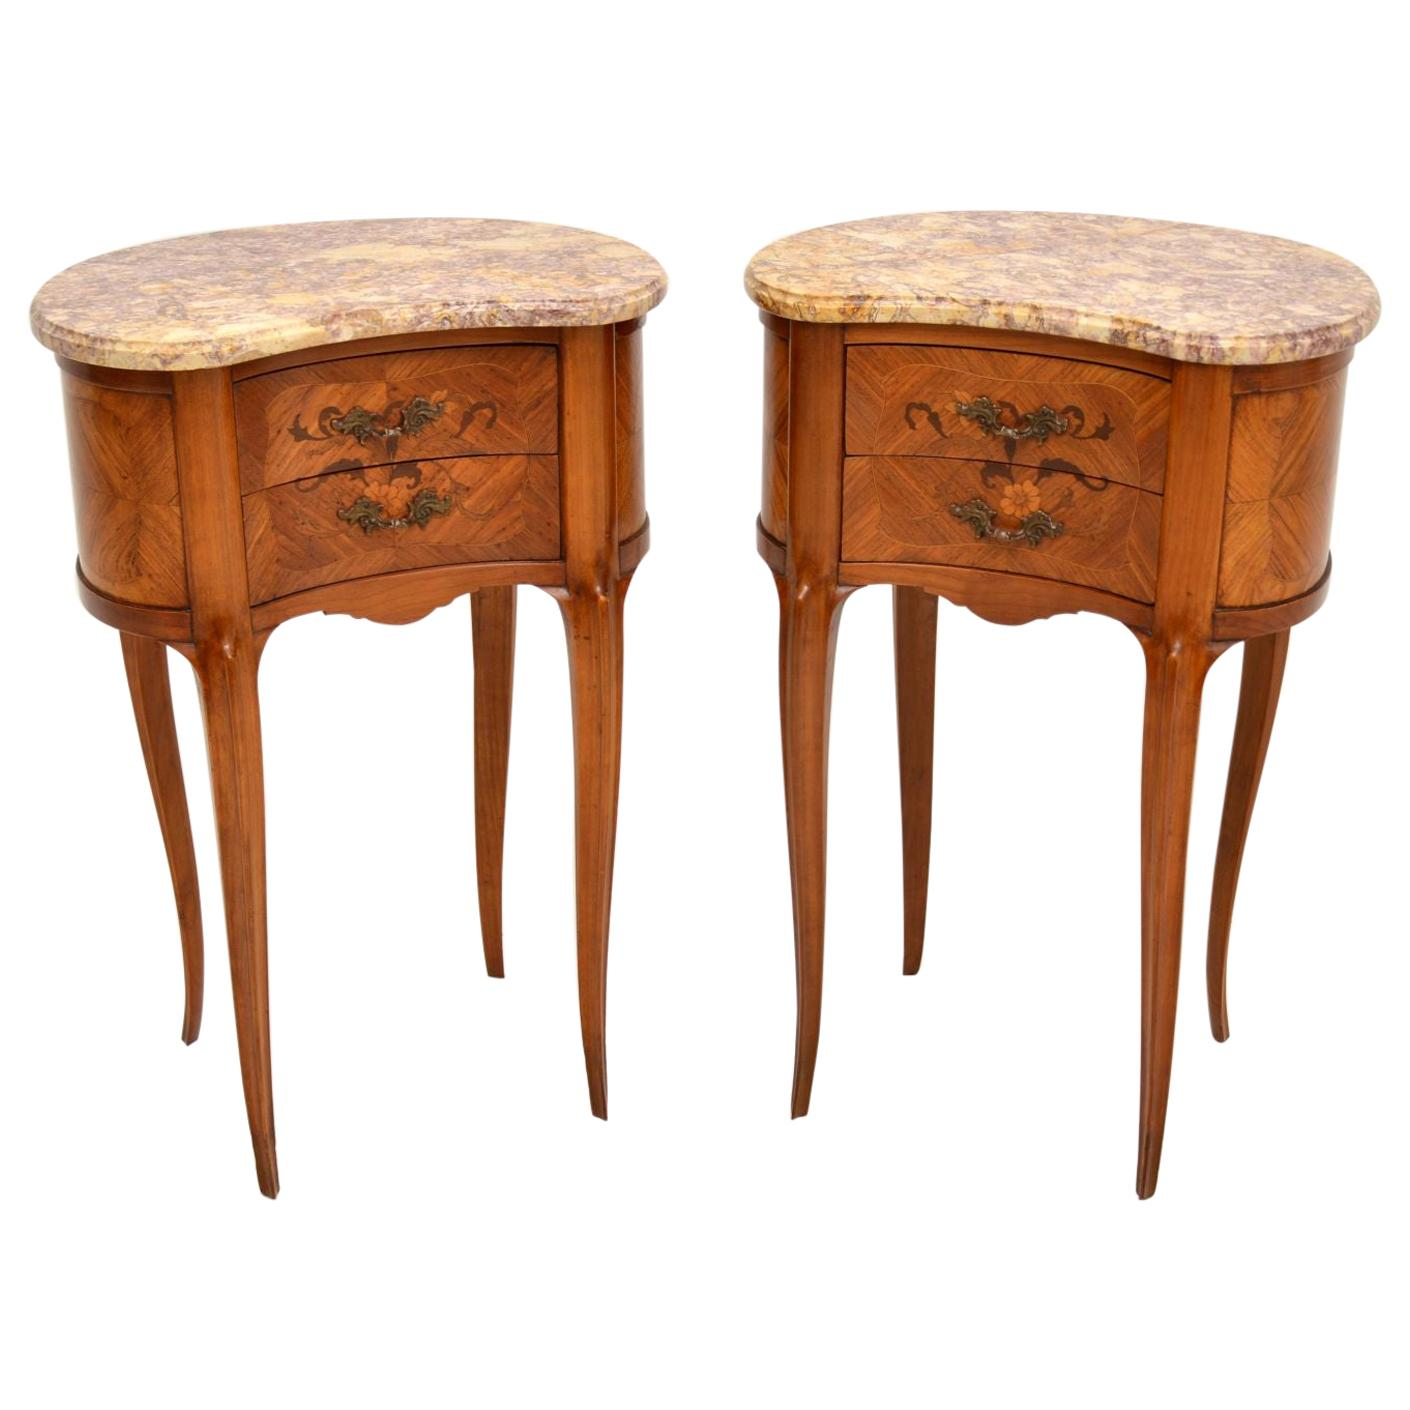 Pair of Antique French Marble Top Kidney Bedside Tables